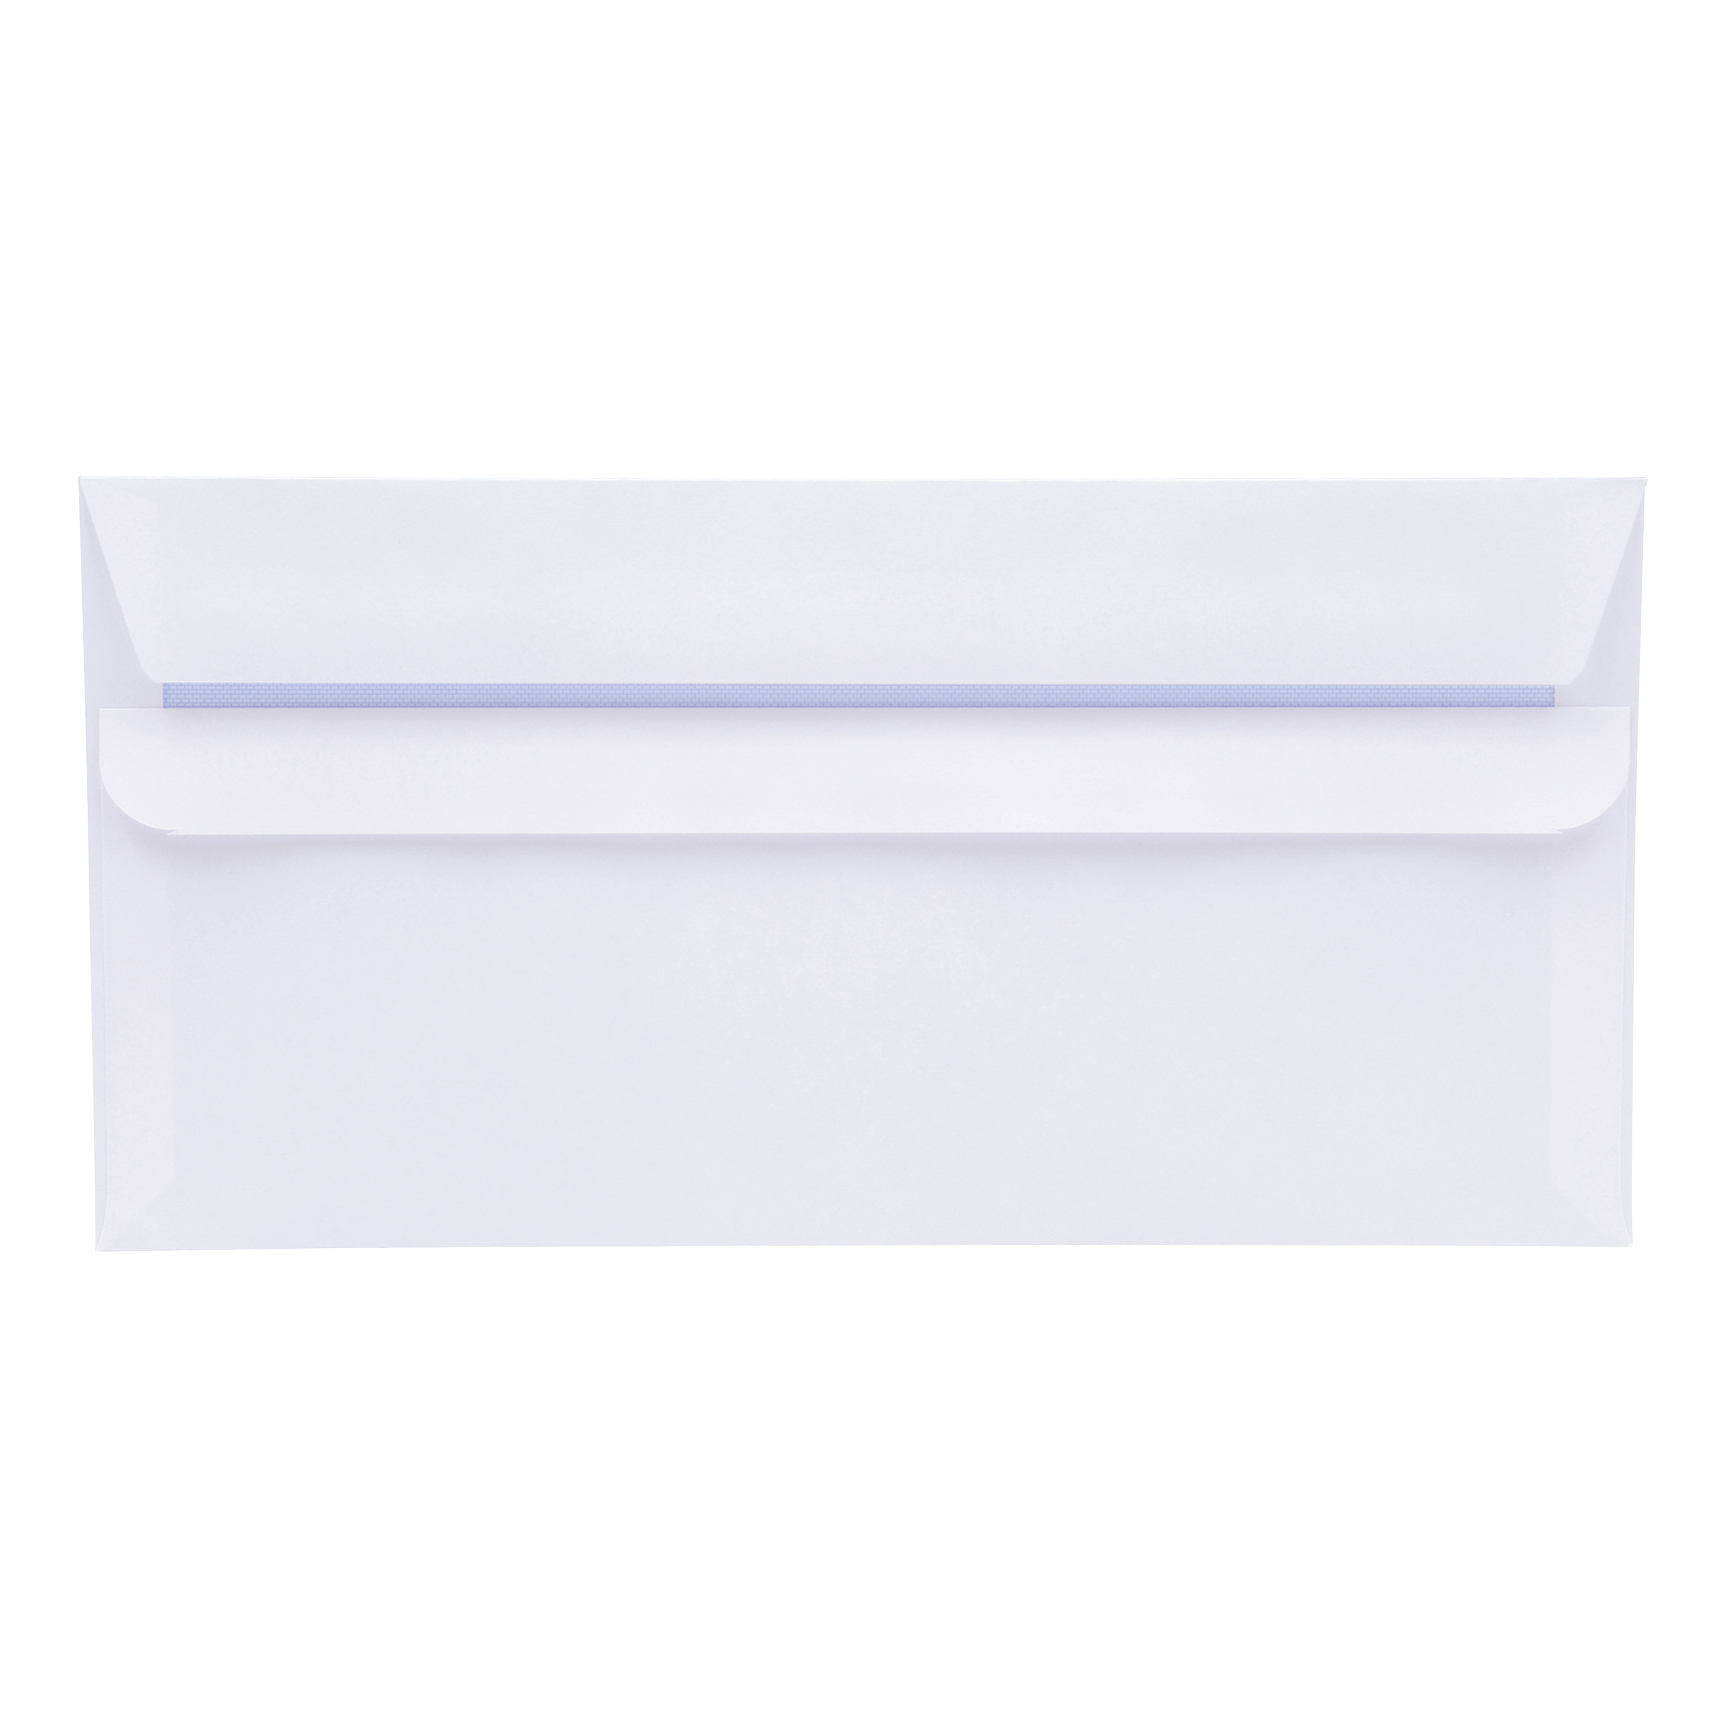 DL 5 Star Office Envelopes PEFC Wallet Self Seal 90gsm DL 220x110mm White Pack 1000